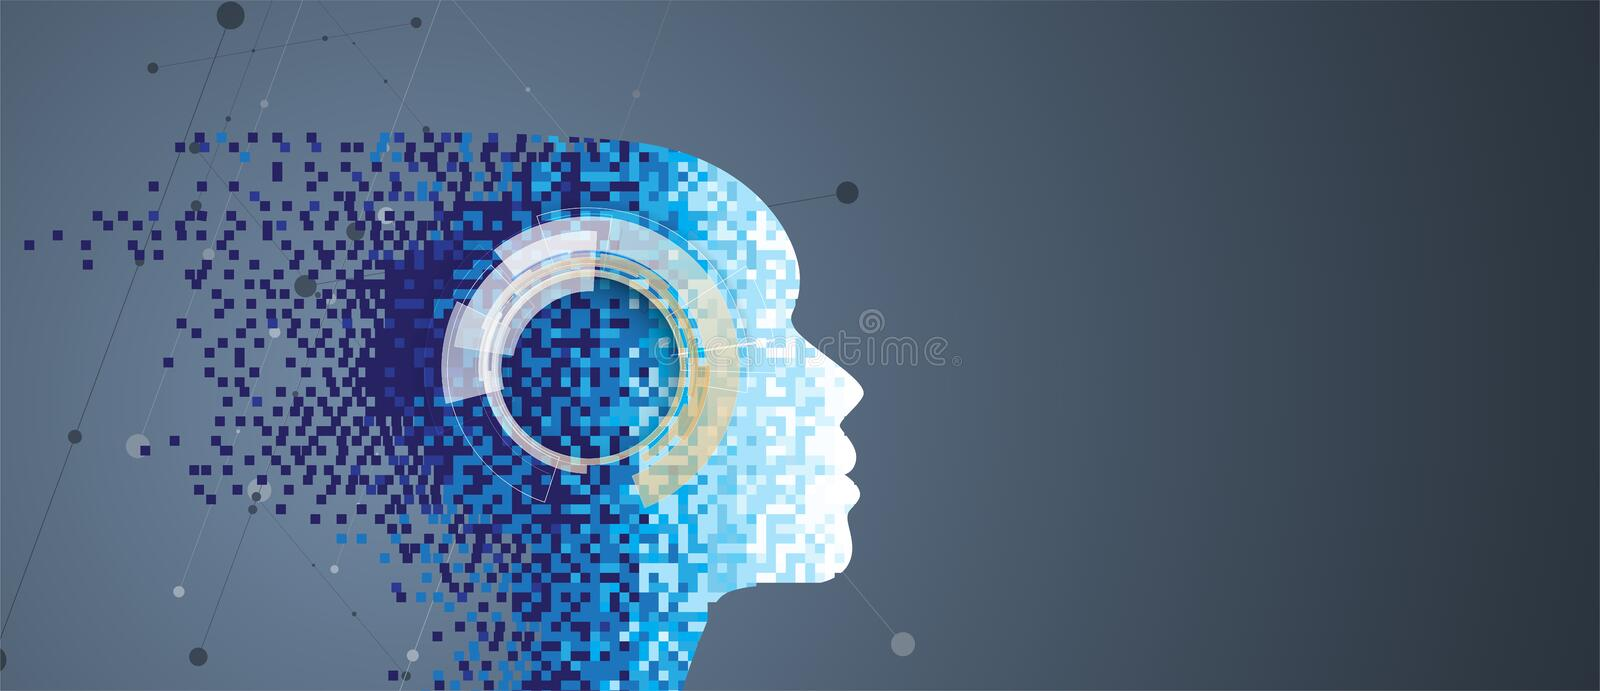 Artificial intelligence. Technology web background. Virtual conc stock illustration